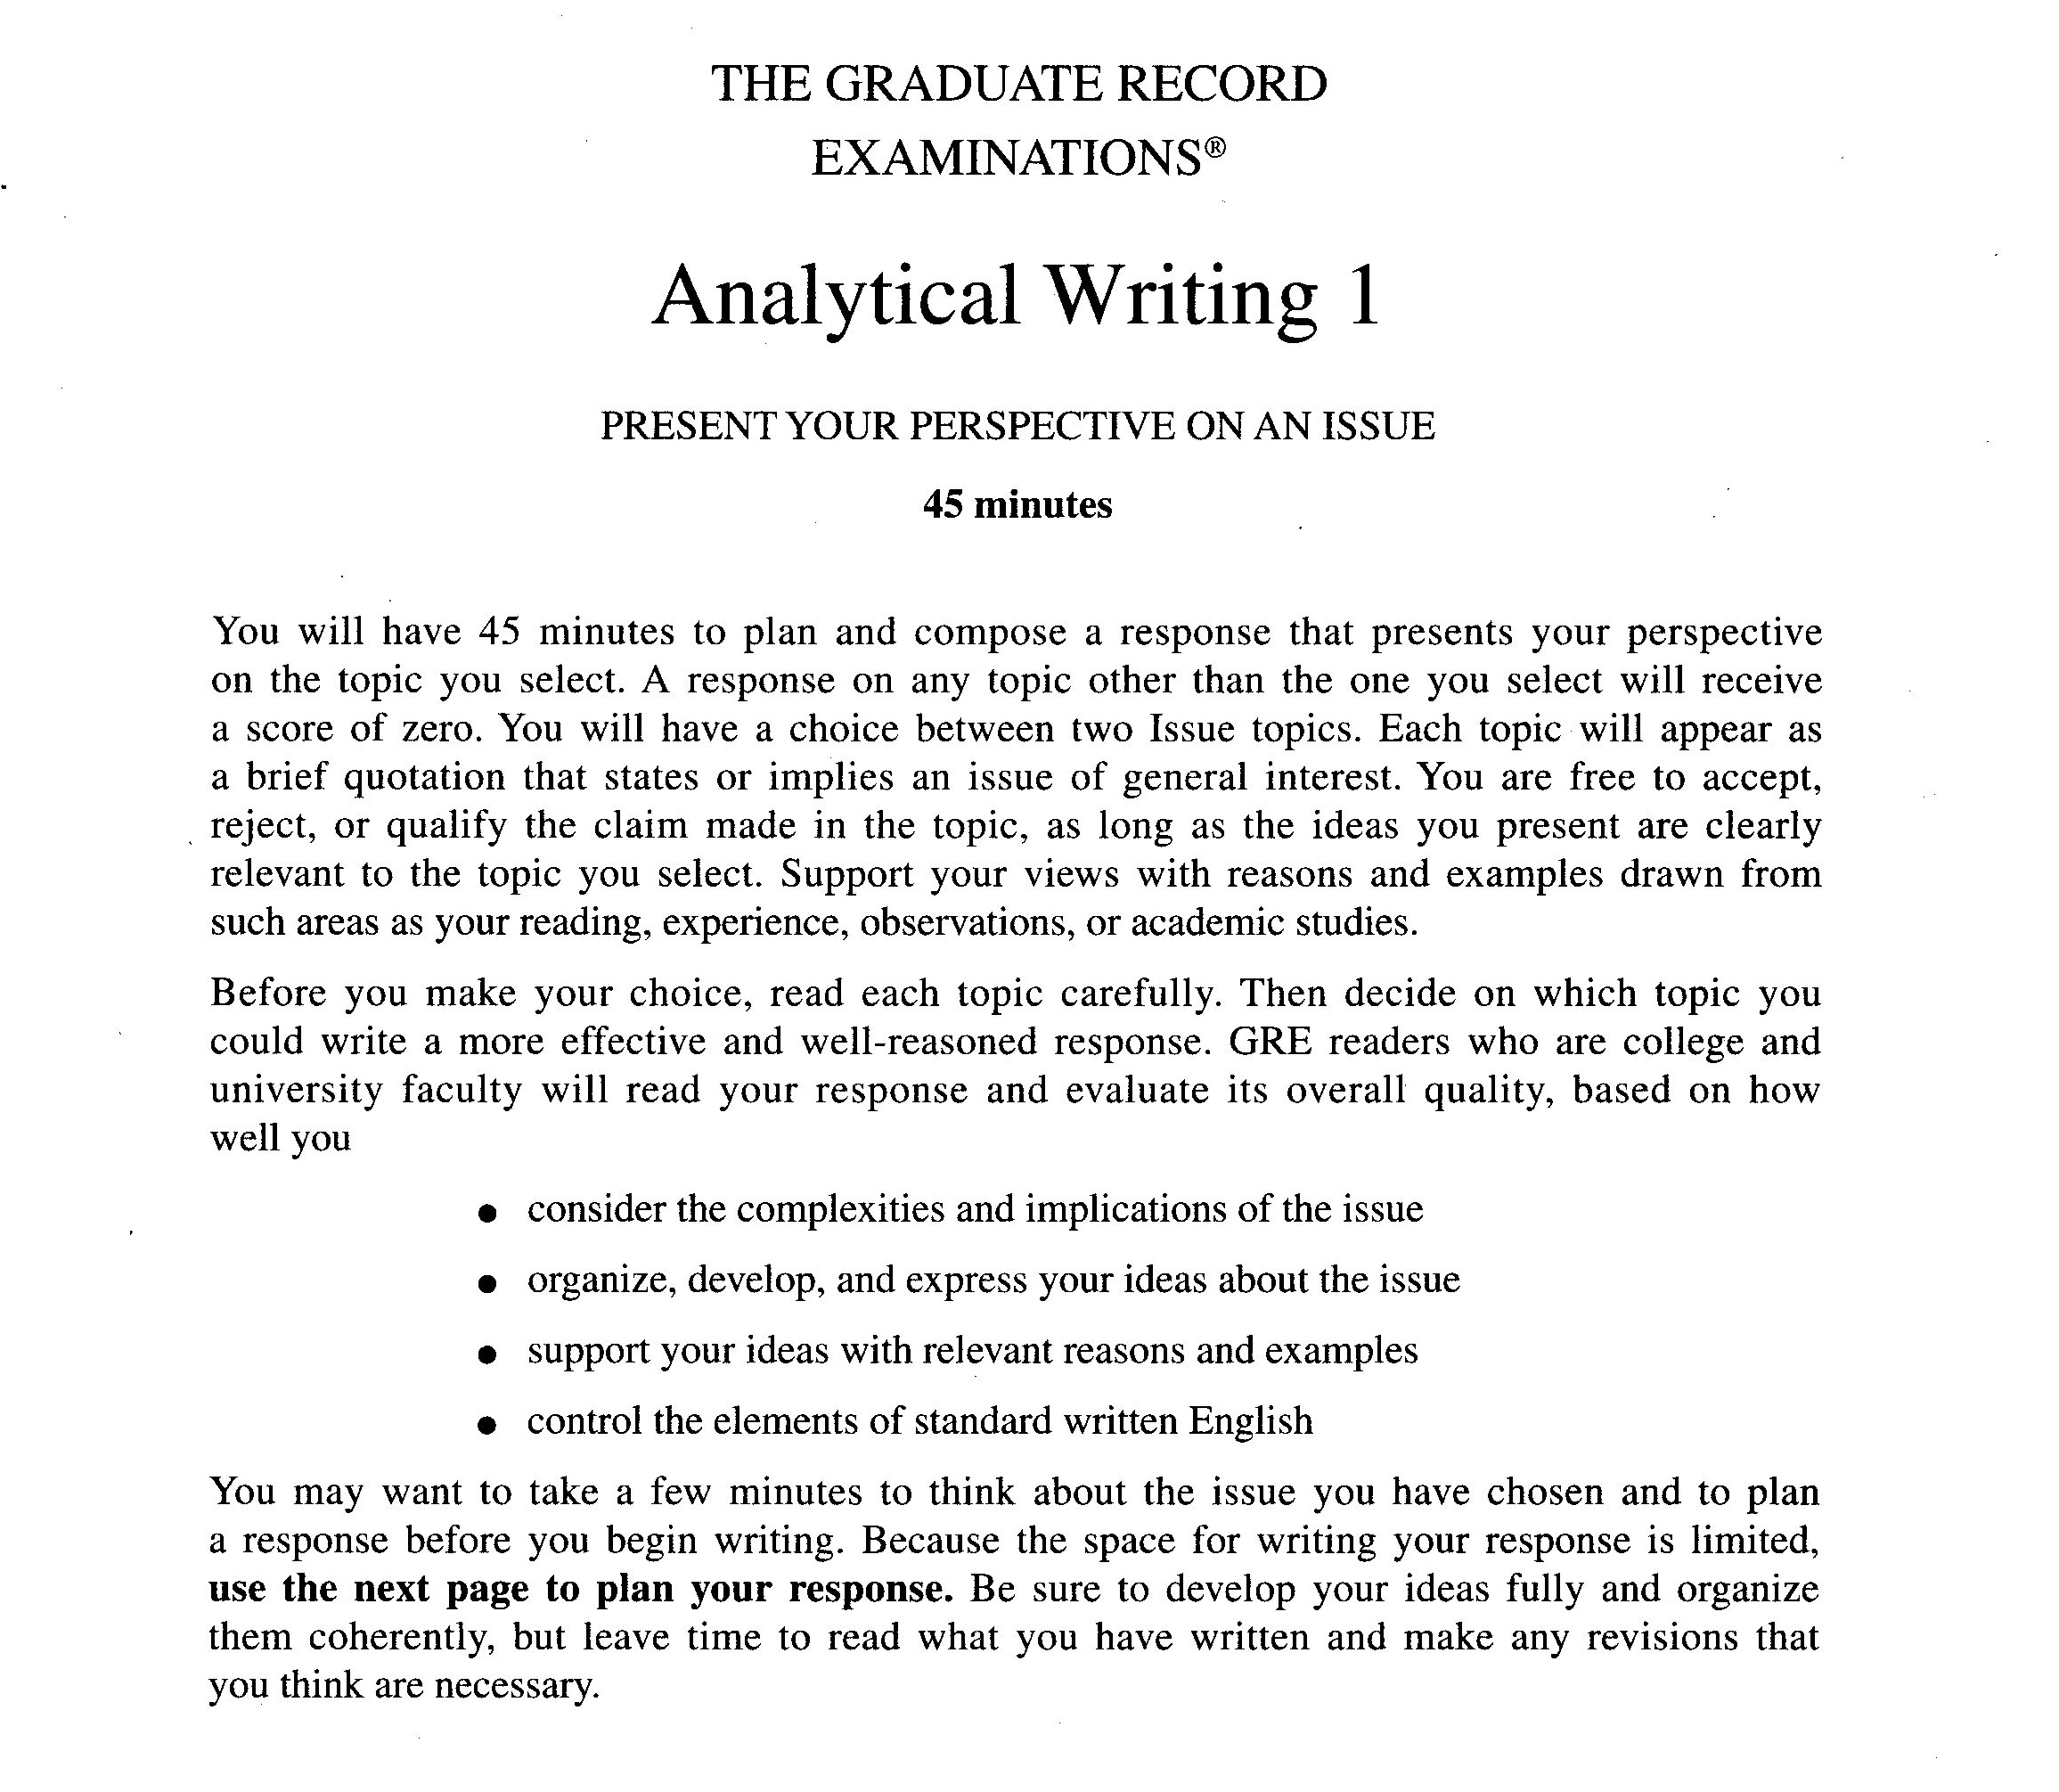 011 Essay Writer Free Analytical20writing20issue20task20directions20for20gre201 Amazing Trial Unblocked Software Full